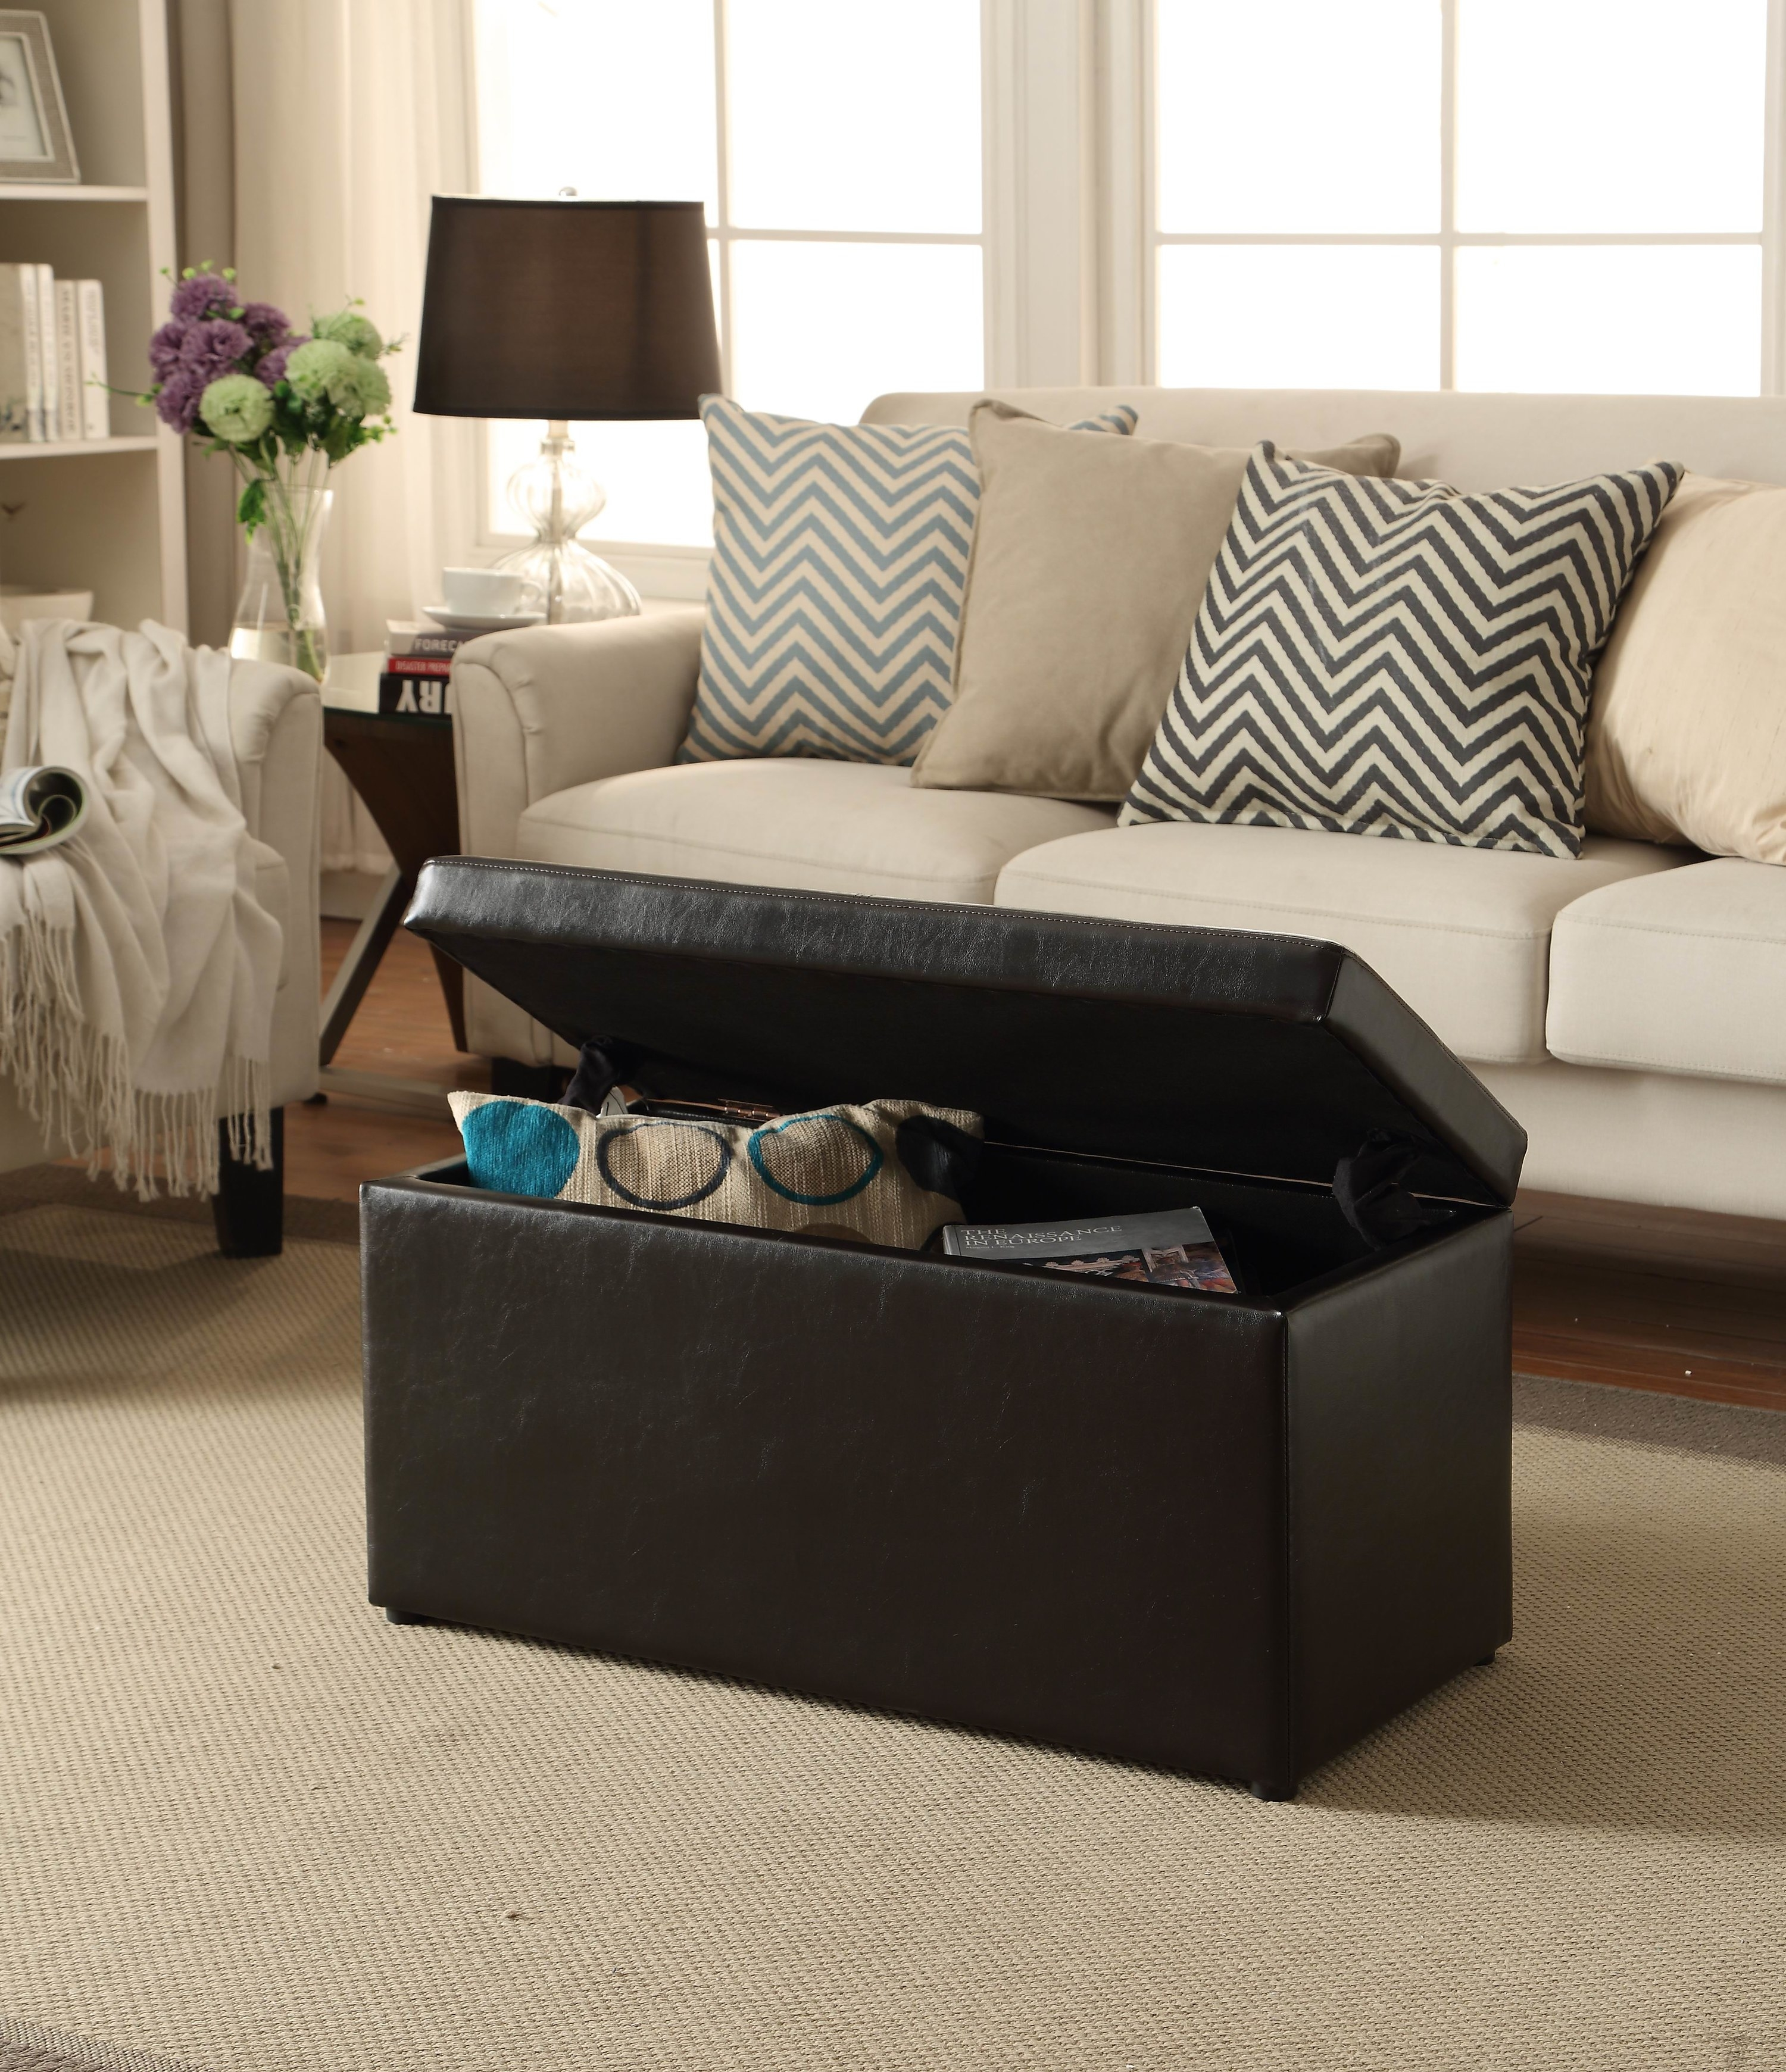 brown storage ottoman with lid open and miscellaneous items inside